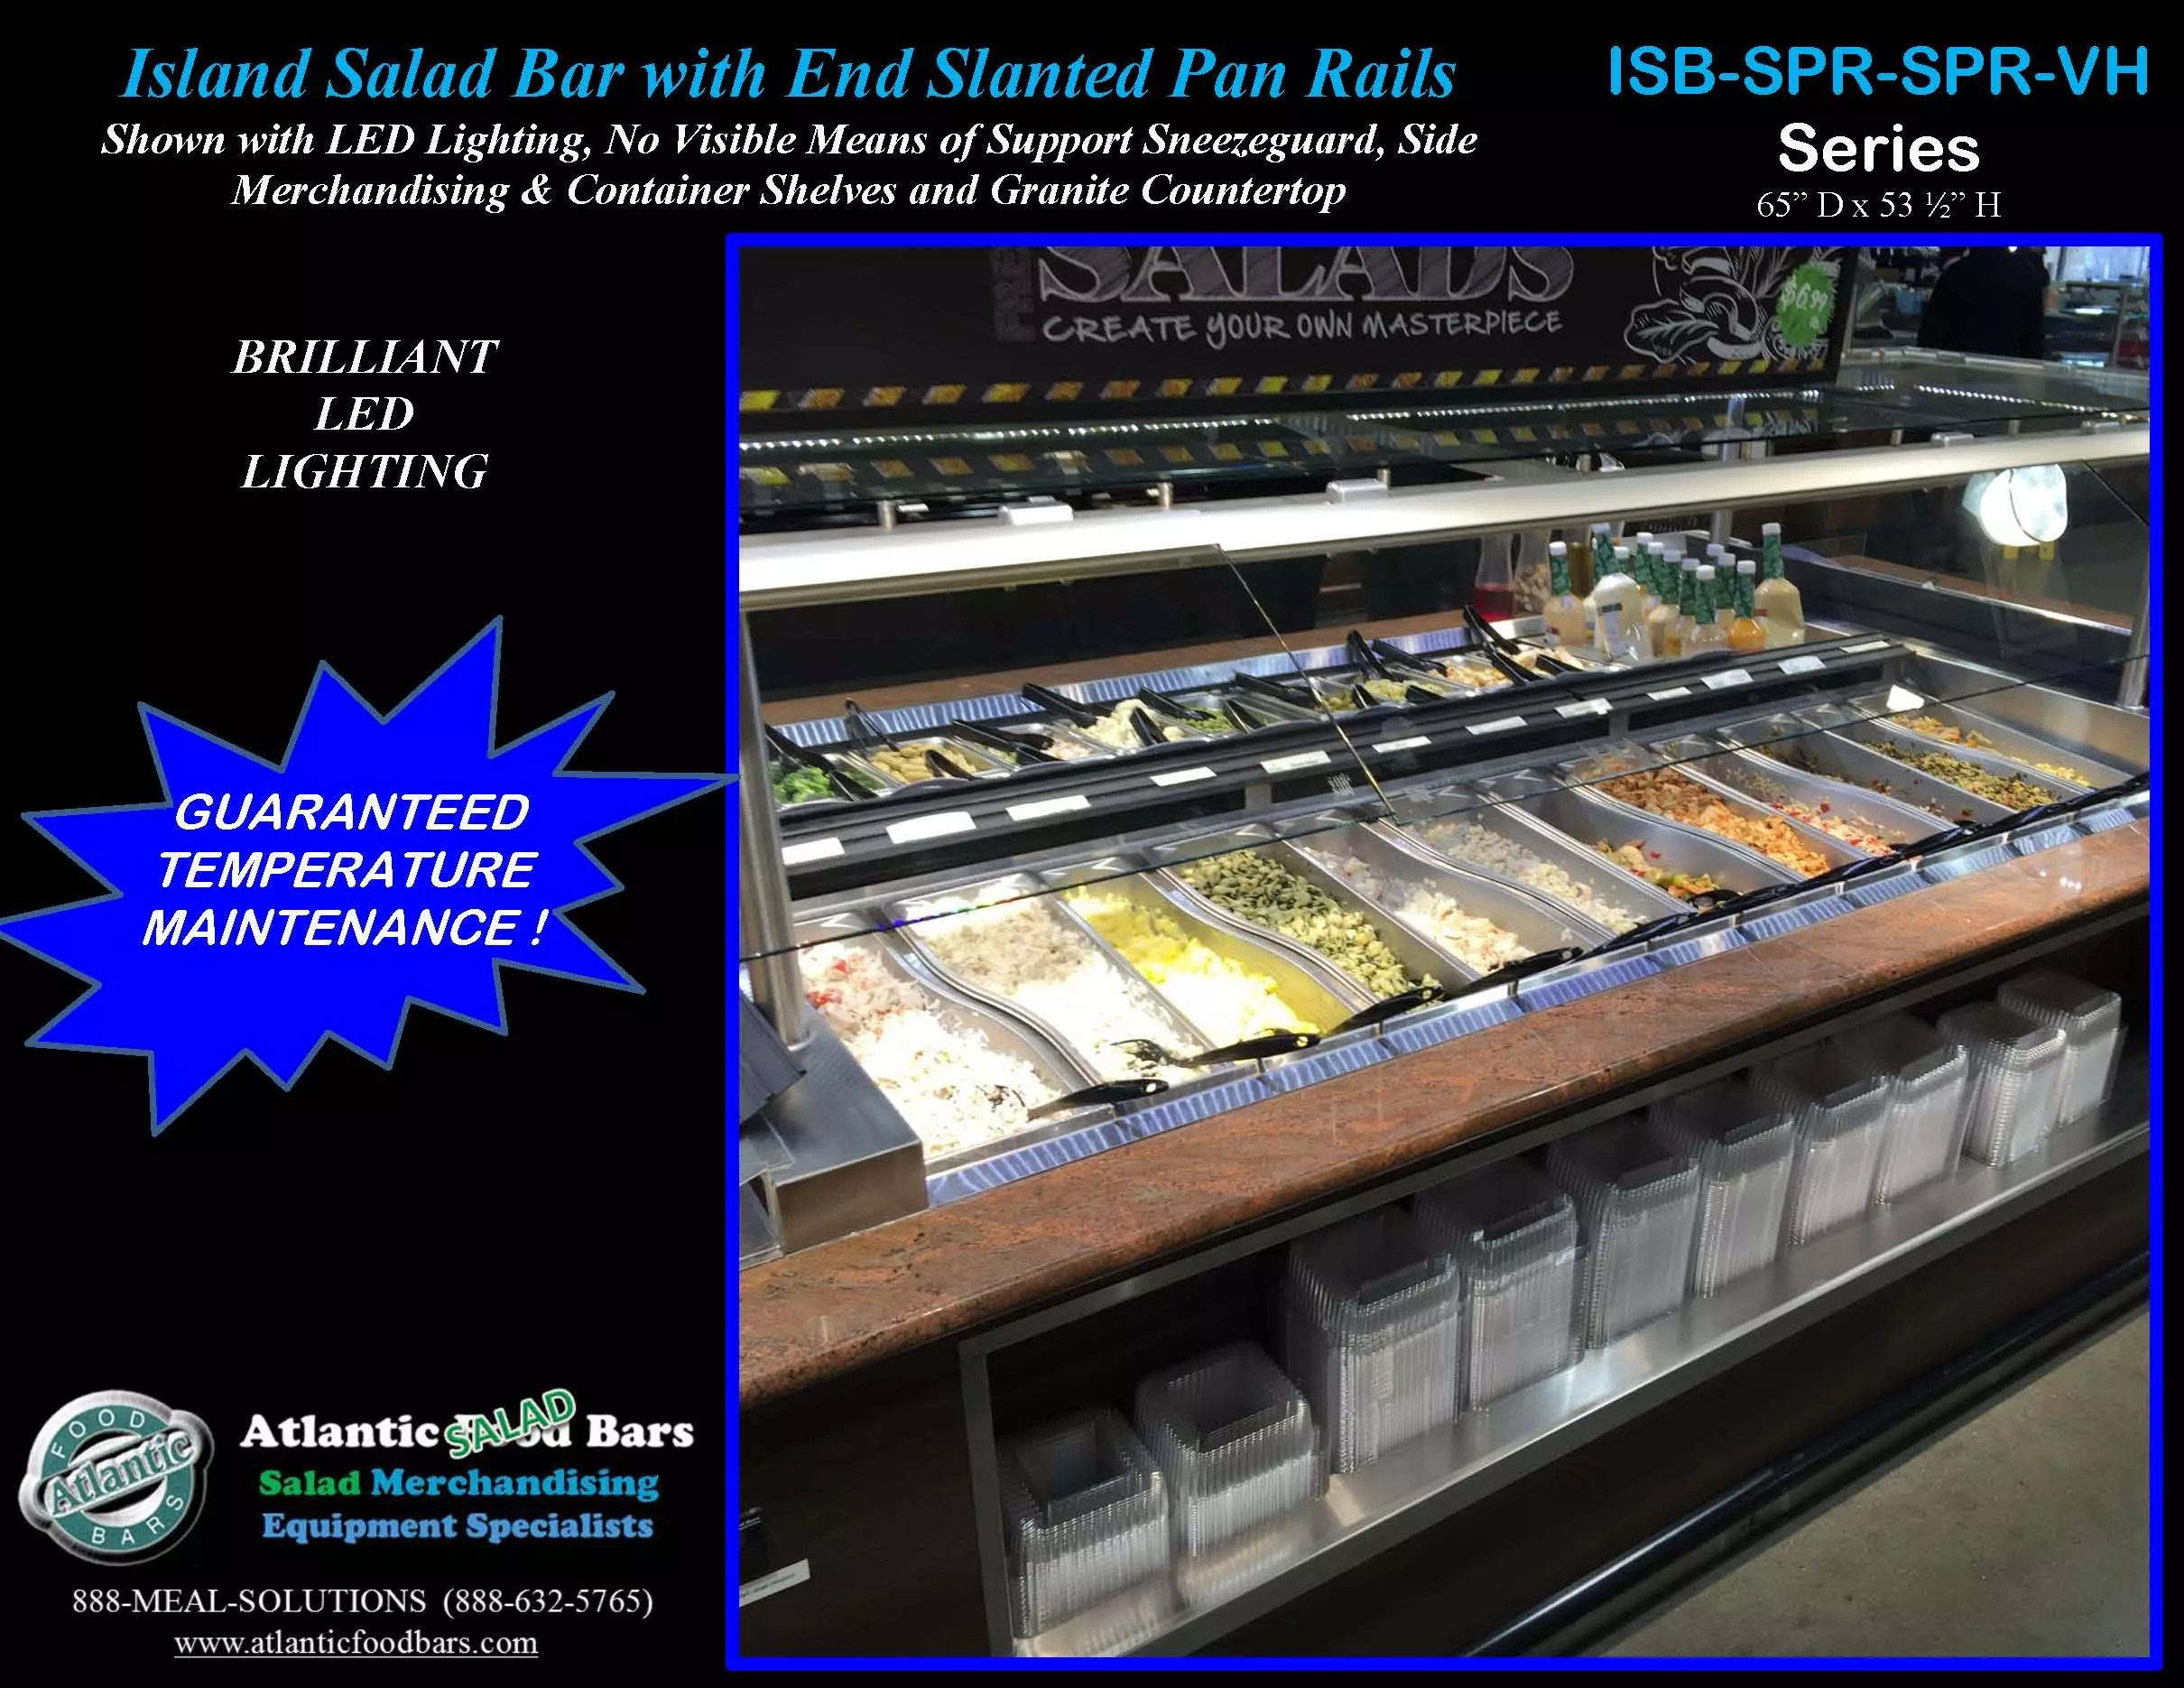 Refrigerated Island Salad Bar Featuring Slanted End Pan Rails Granite Countertop And LED Lighting ISB14863 GC SPR2 VH